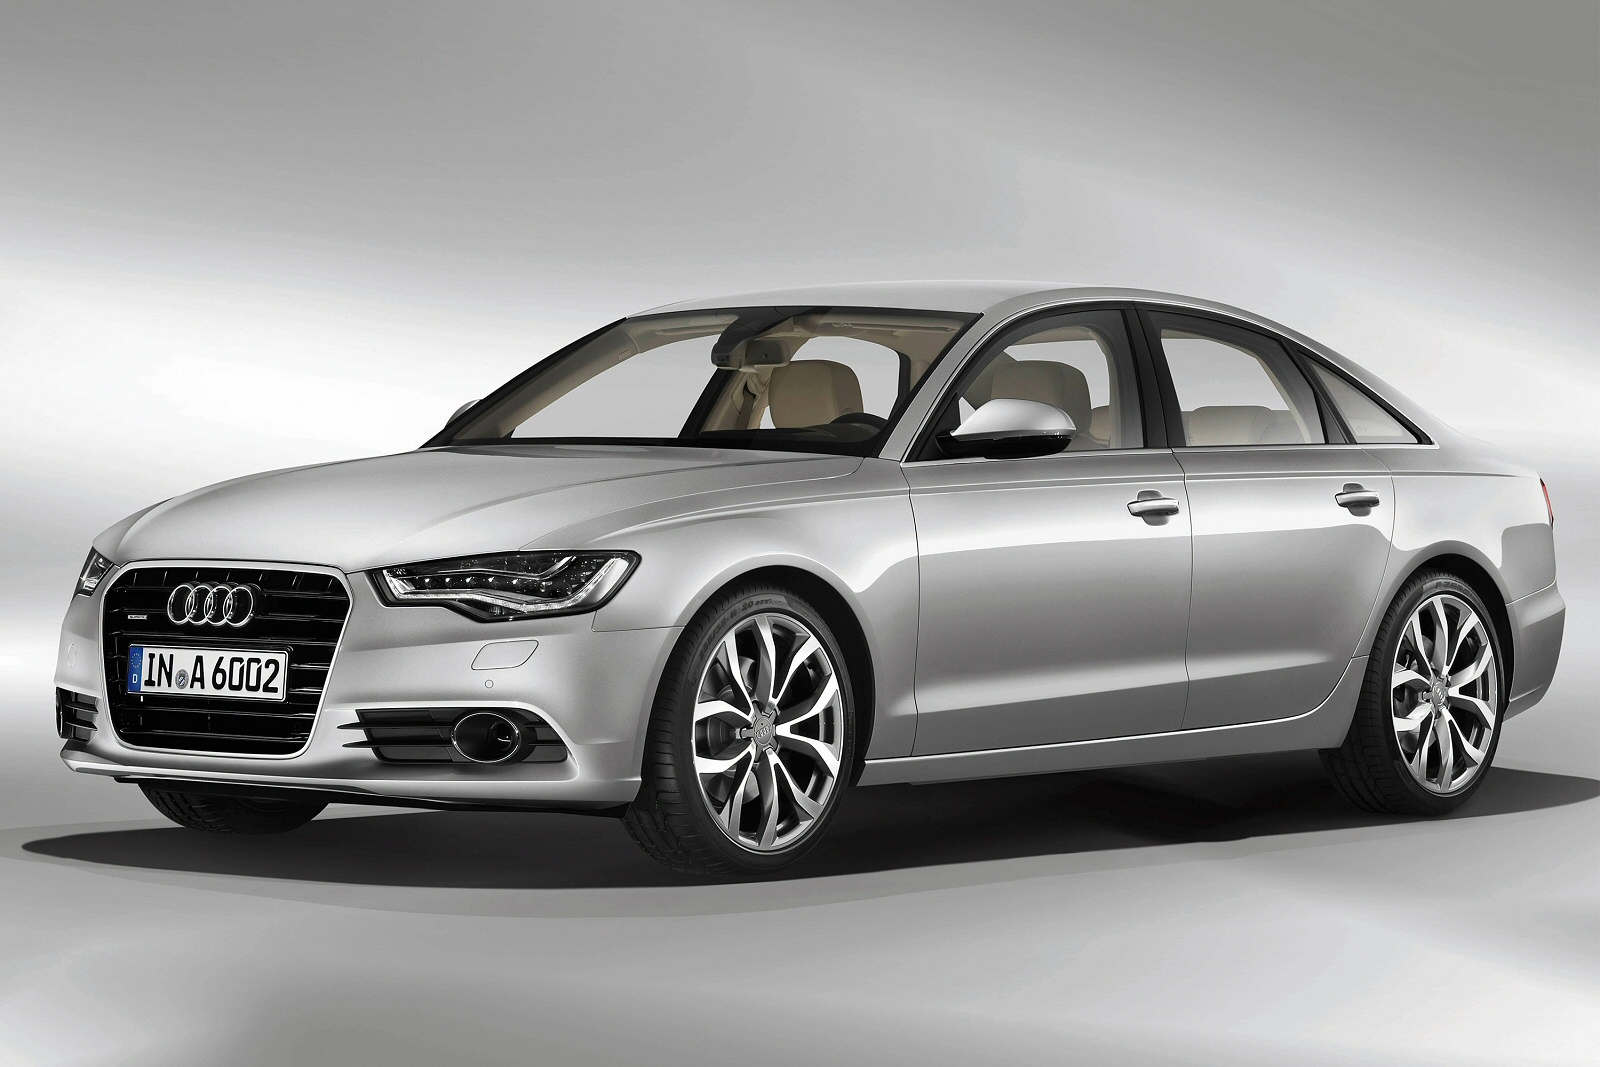 new audi a6 2 0 tdi ultra se executive 4dr s tronic diesel saloon for sale hereford audi. Black Bedroom Furniture Sets. Home Design Ideas